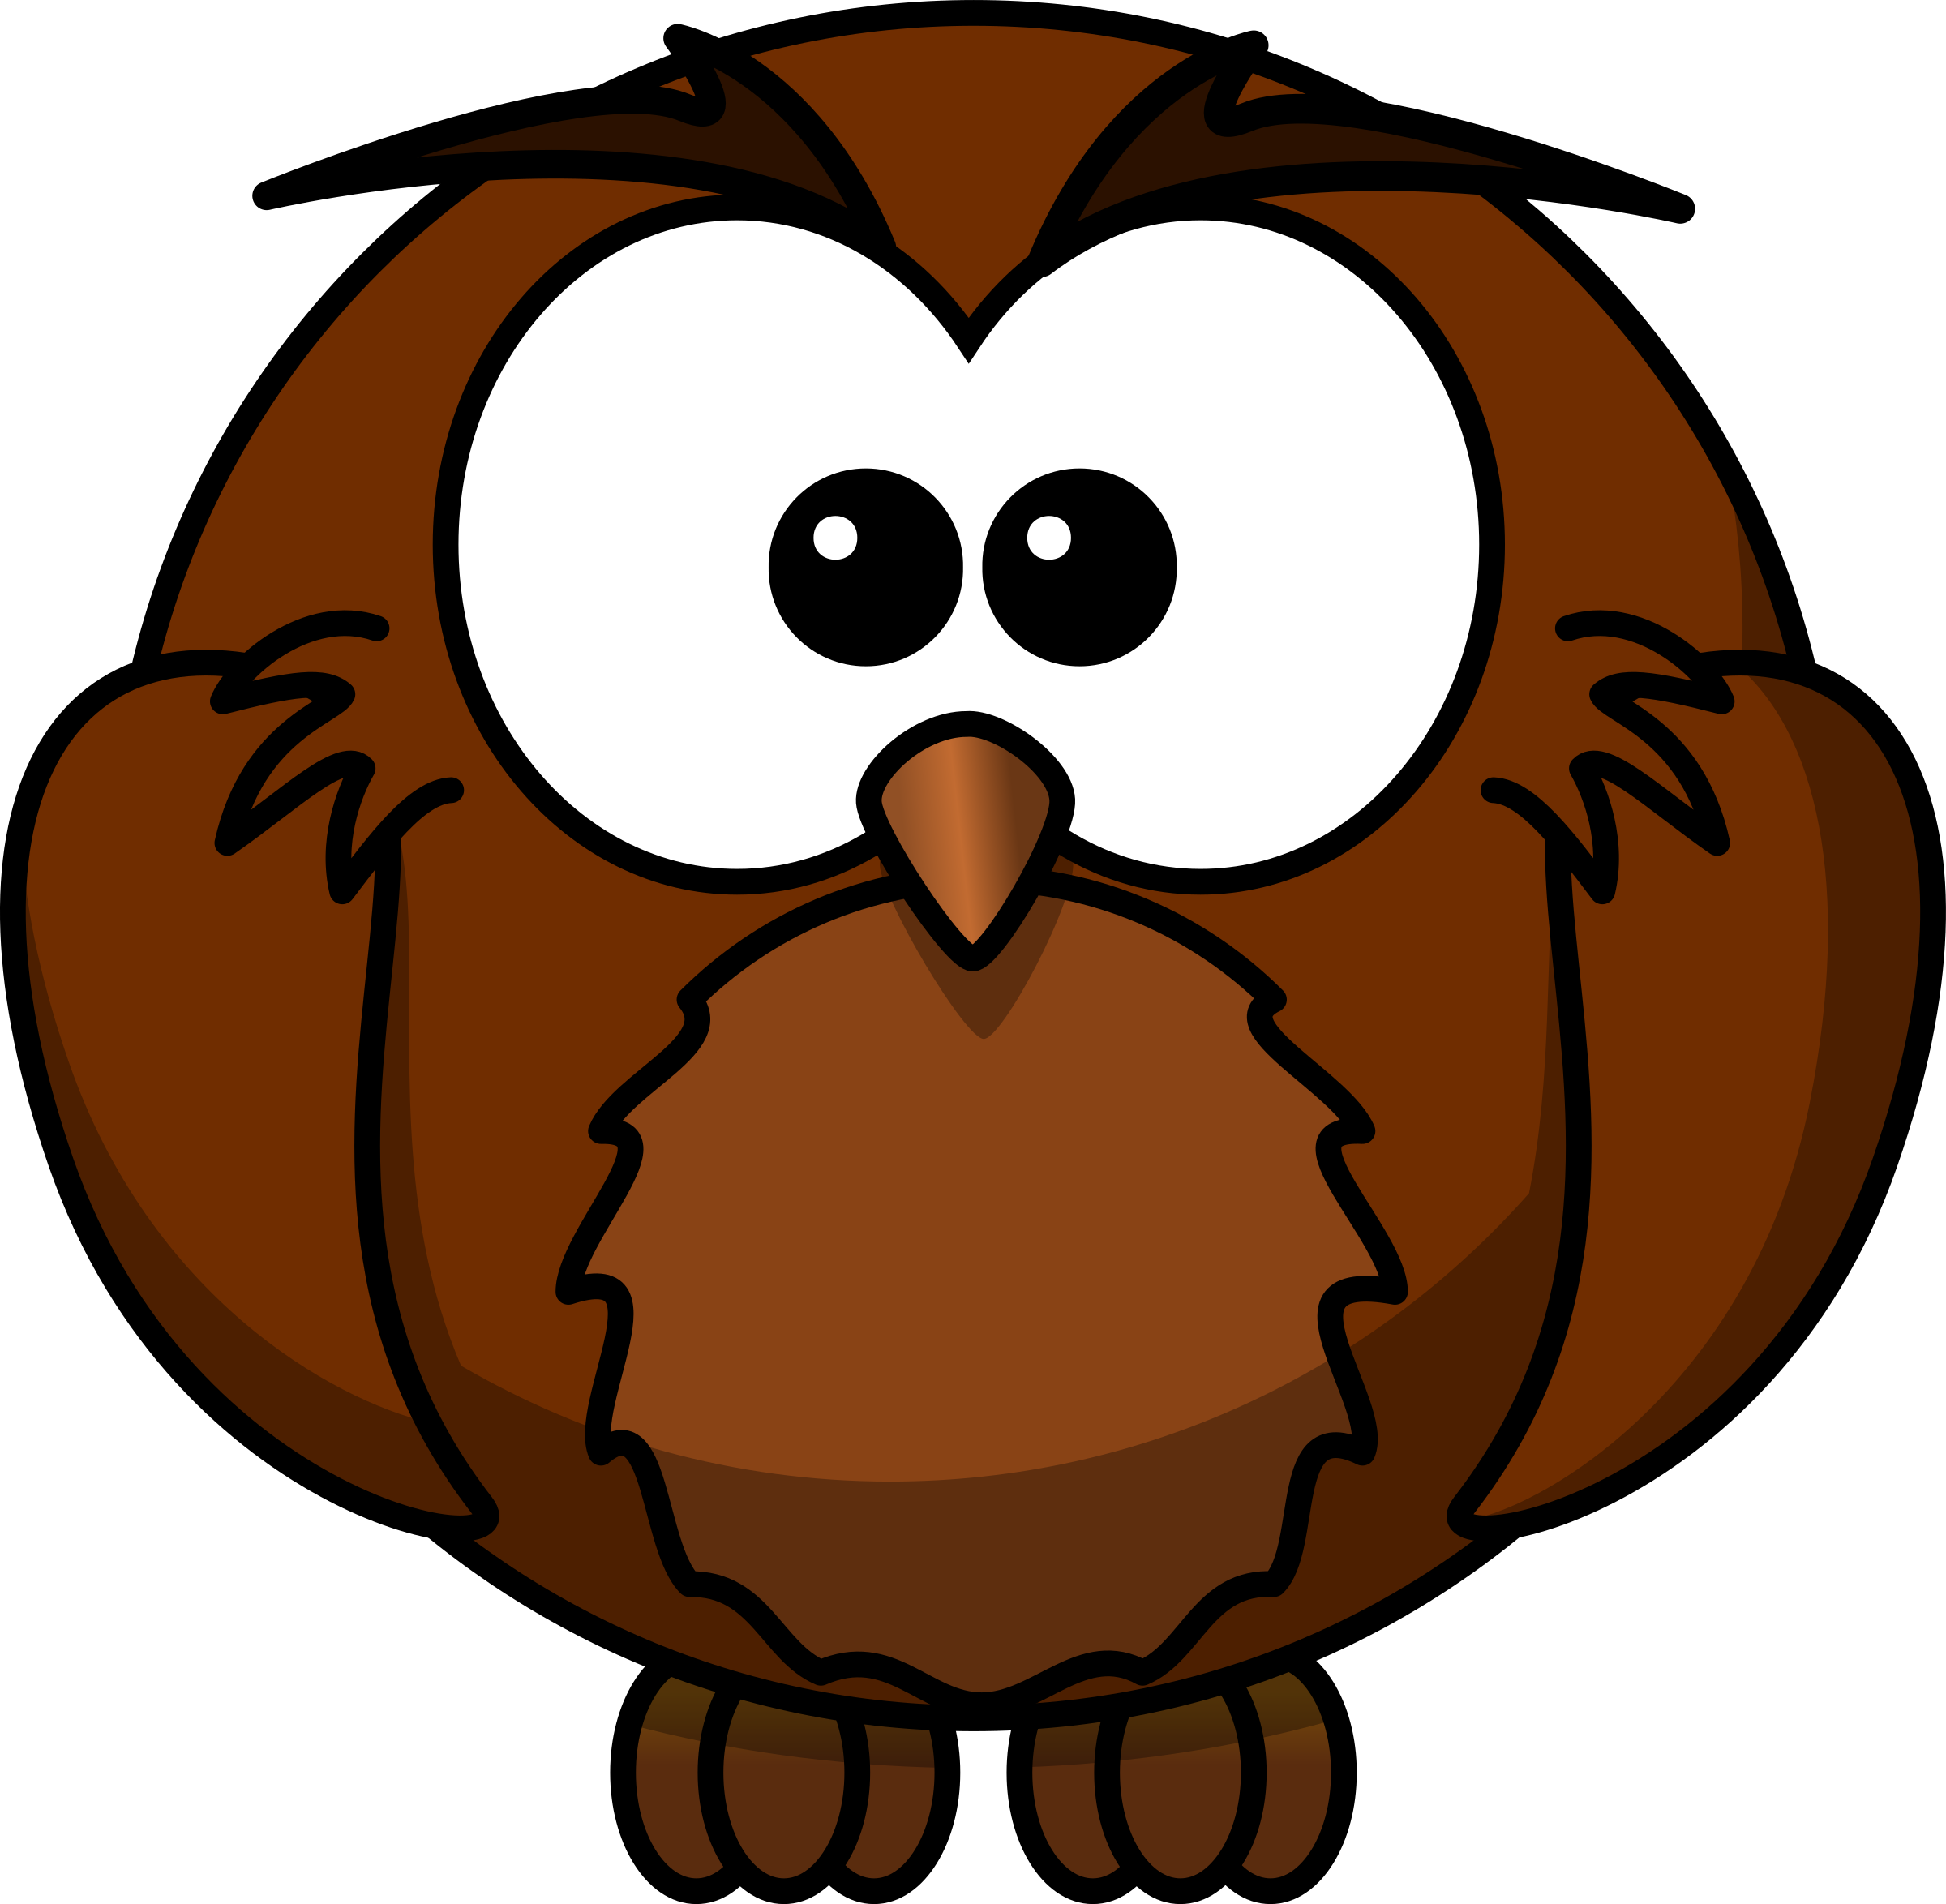 wise Cartoon owl who has sat under a Mango tree for many years and knows how to listen well and has considered many issues and who knows many things and shares them carefully by The Martin